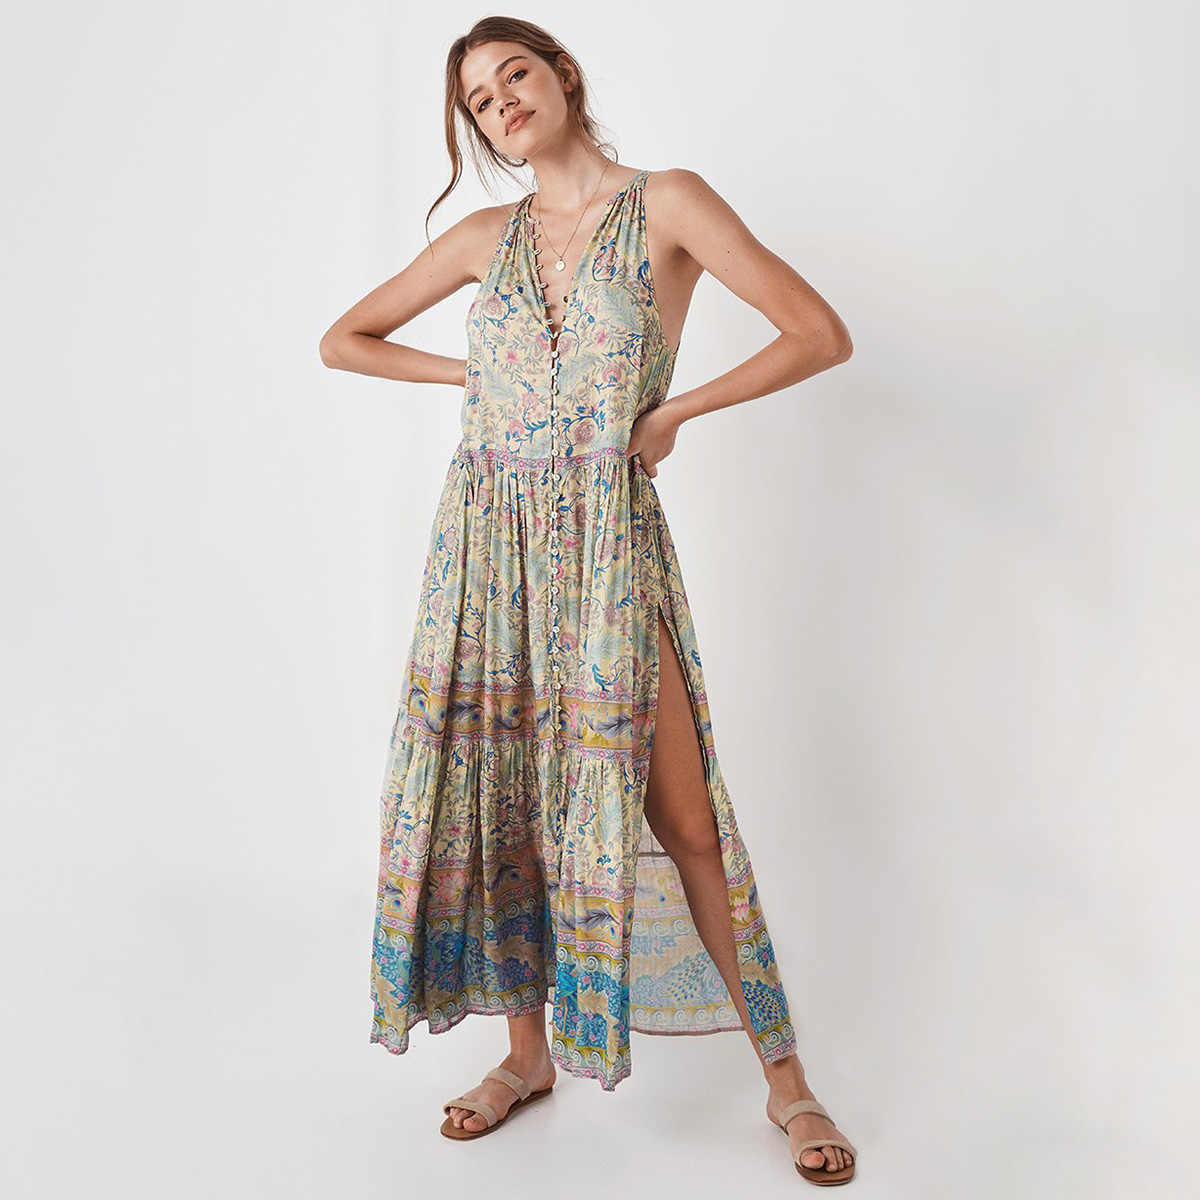 3090e5c623b6 ... Oasis Maxi Dress Button-up Front V-Neck Sleeveless Summer Dresses Gypsy  Style Floral ...